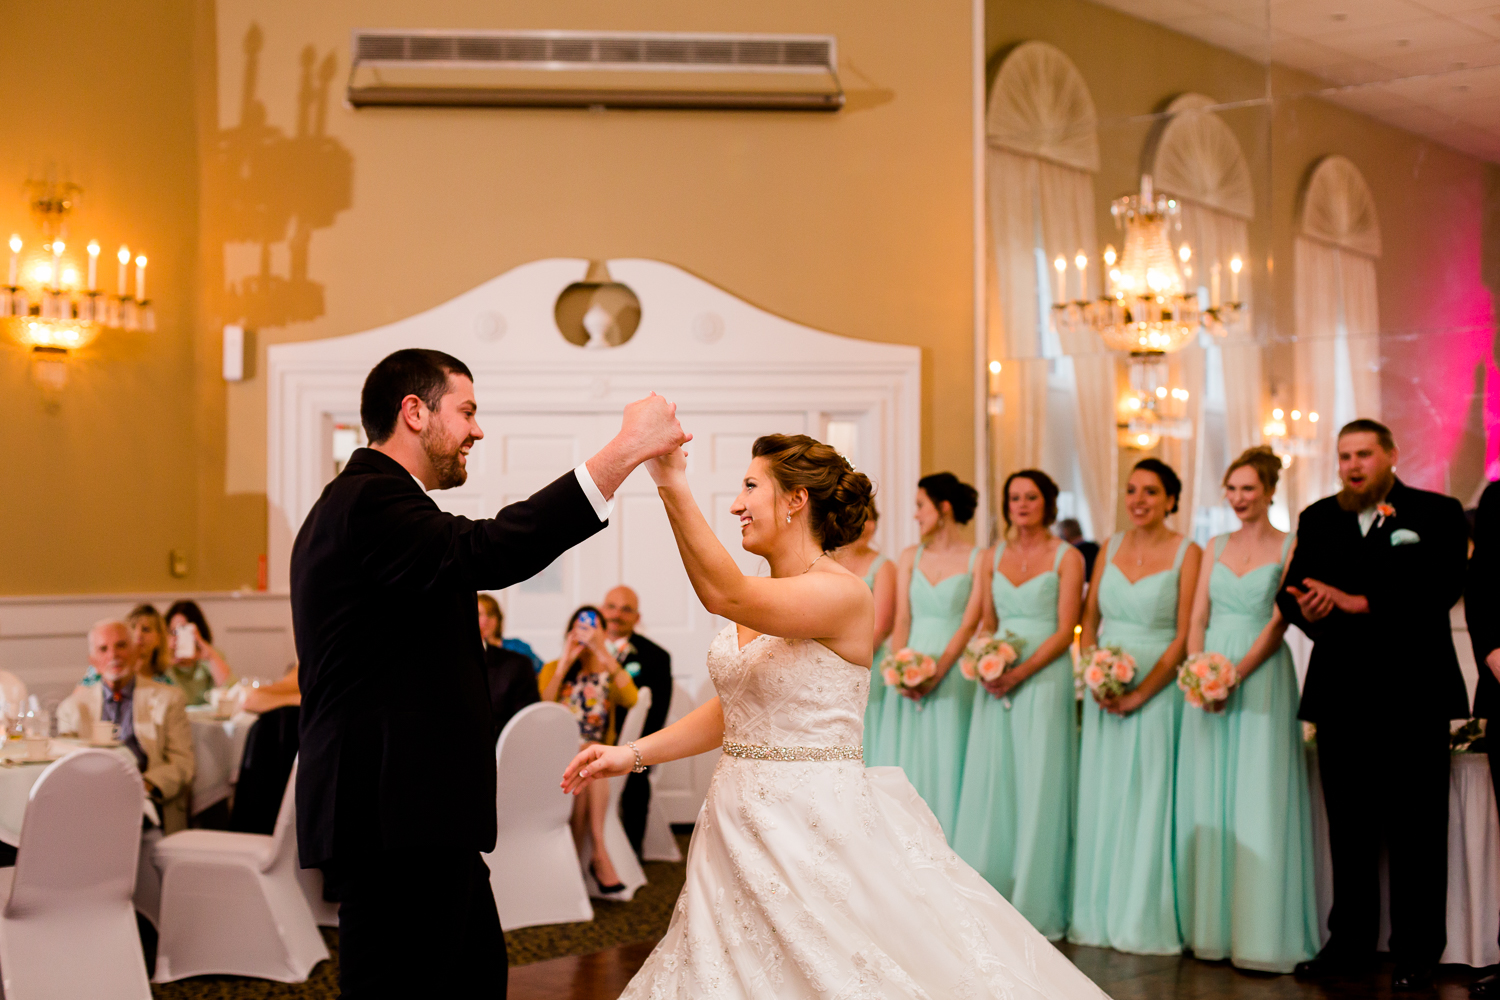 Groom spins bride during first dance at their wedding reception.